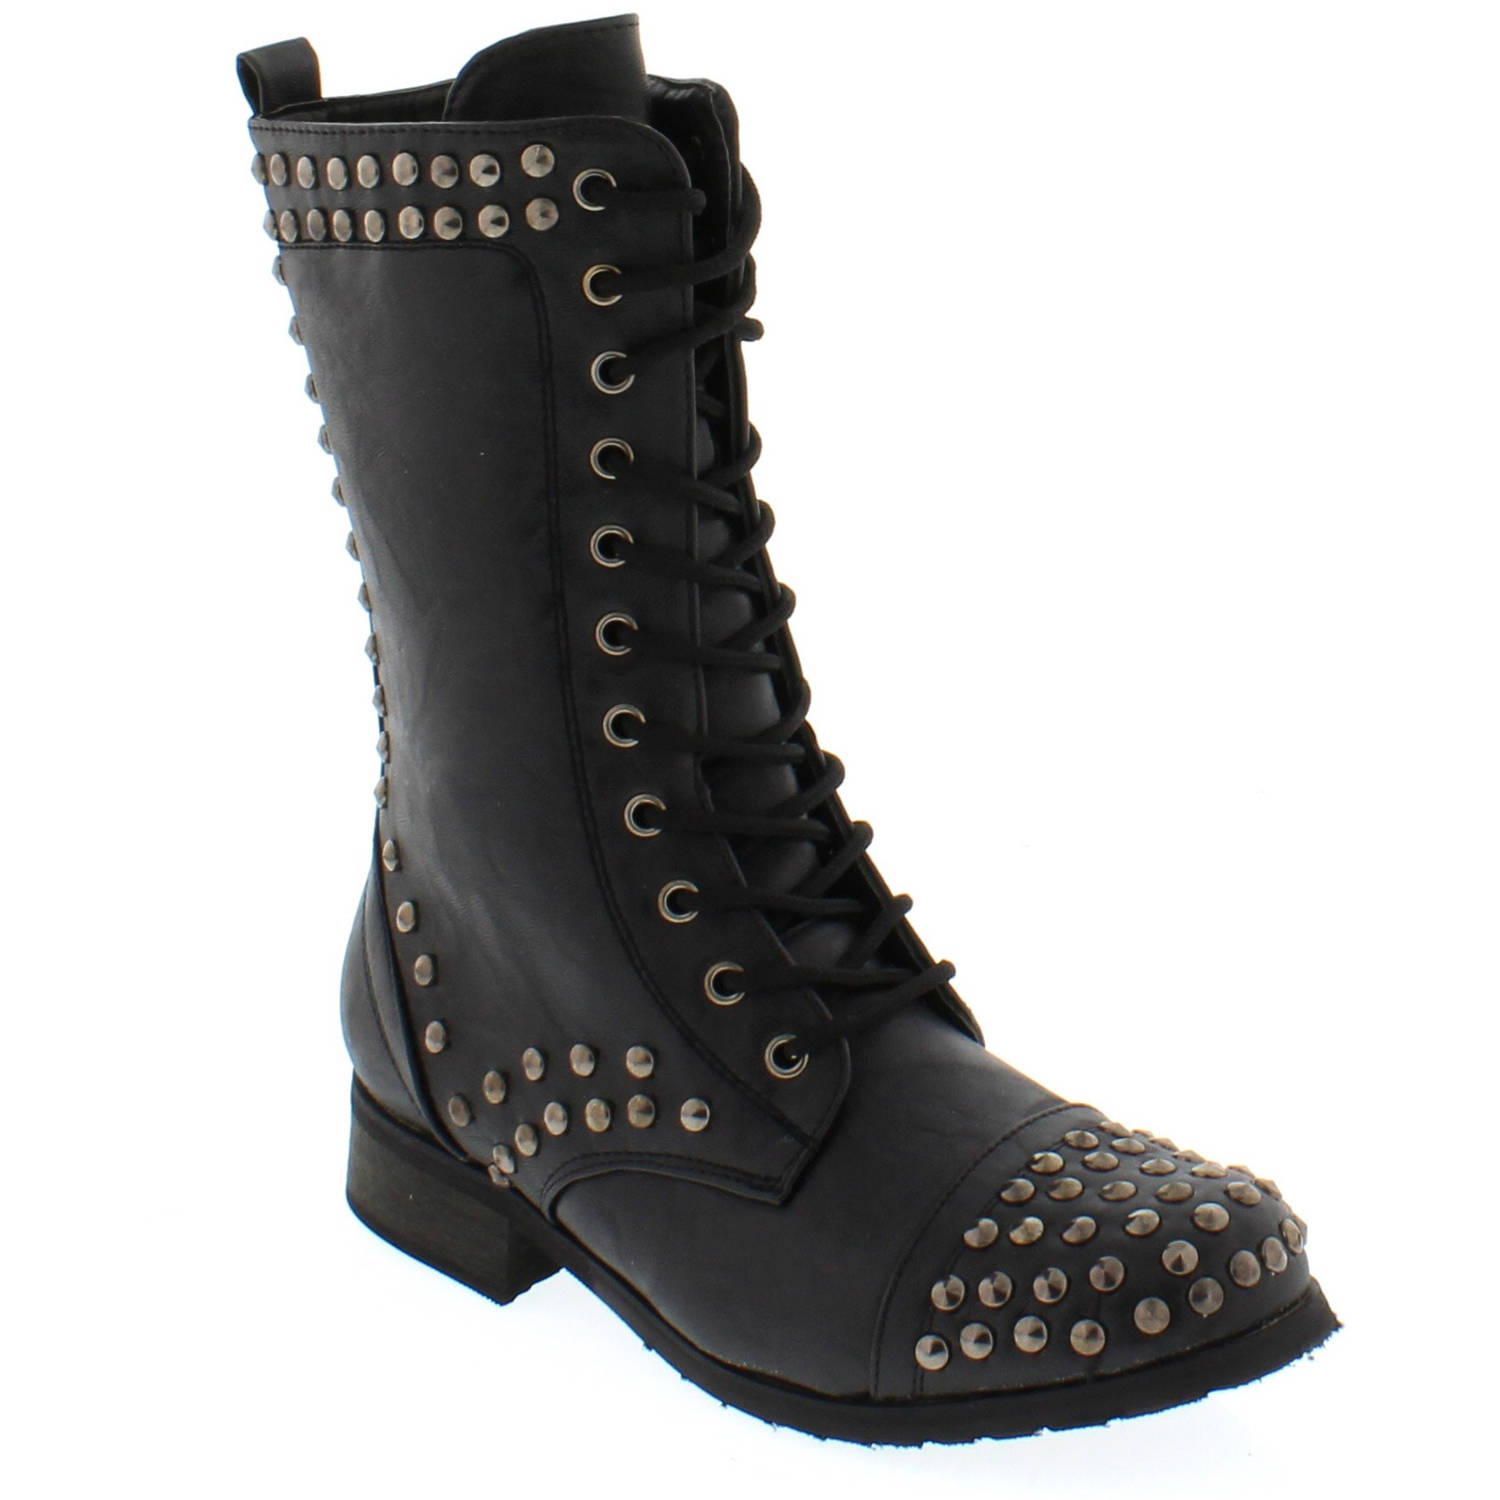 Shoes of Soul Women's Laces Buckle Studed Boots